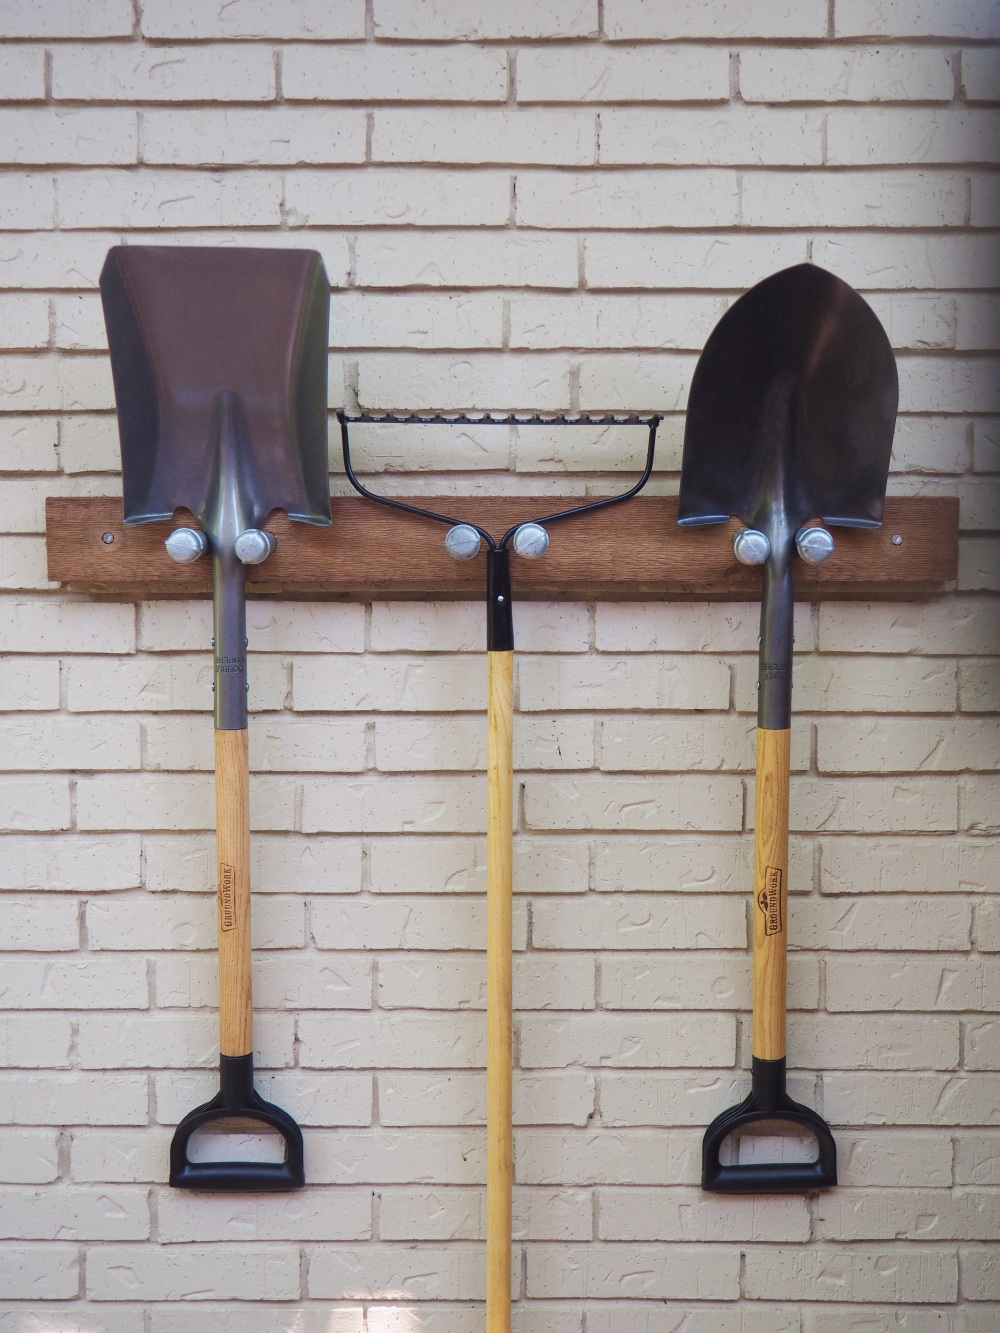 garden-tool-rack-with-tools-longways